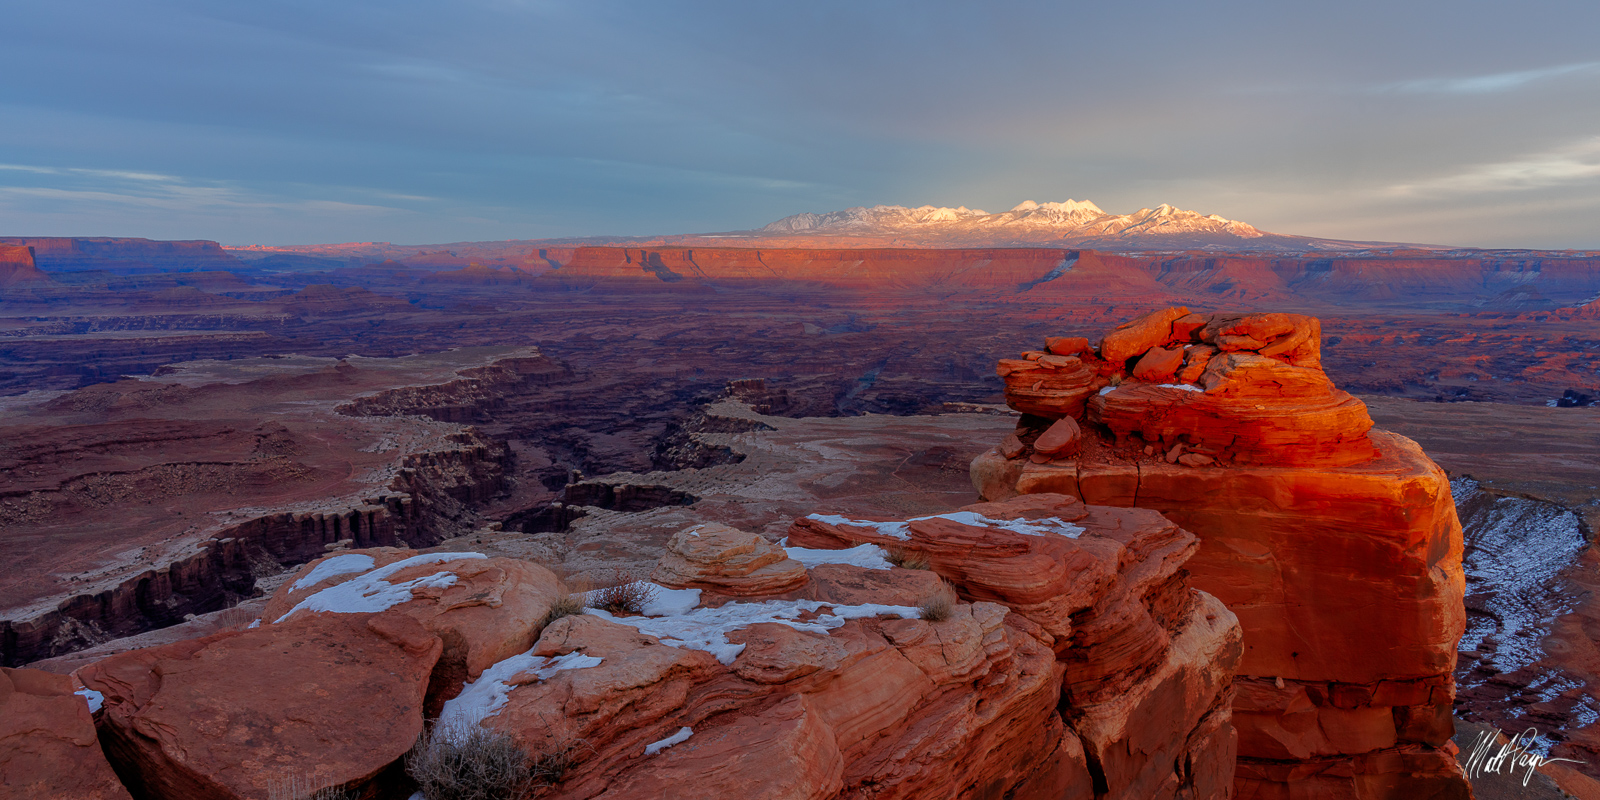 Canyonlands, Canyonlands National Park, Canyons, Gooseberry Canyon, Grand Scenic, Island in the Sky, La Sal Mountains, Mountains, Panorama, Snow, Sunset, Utah, Winter, desert, photo